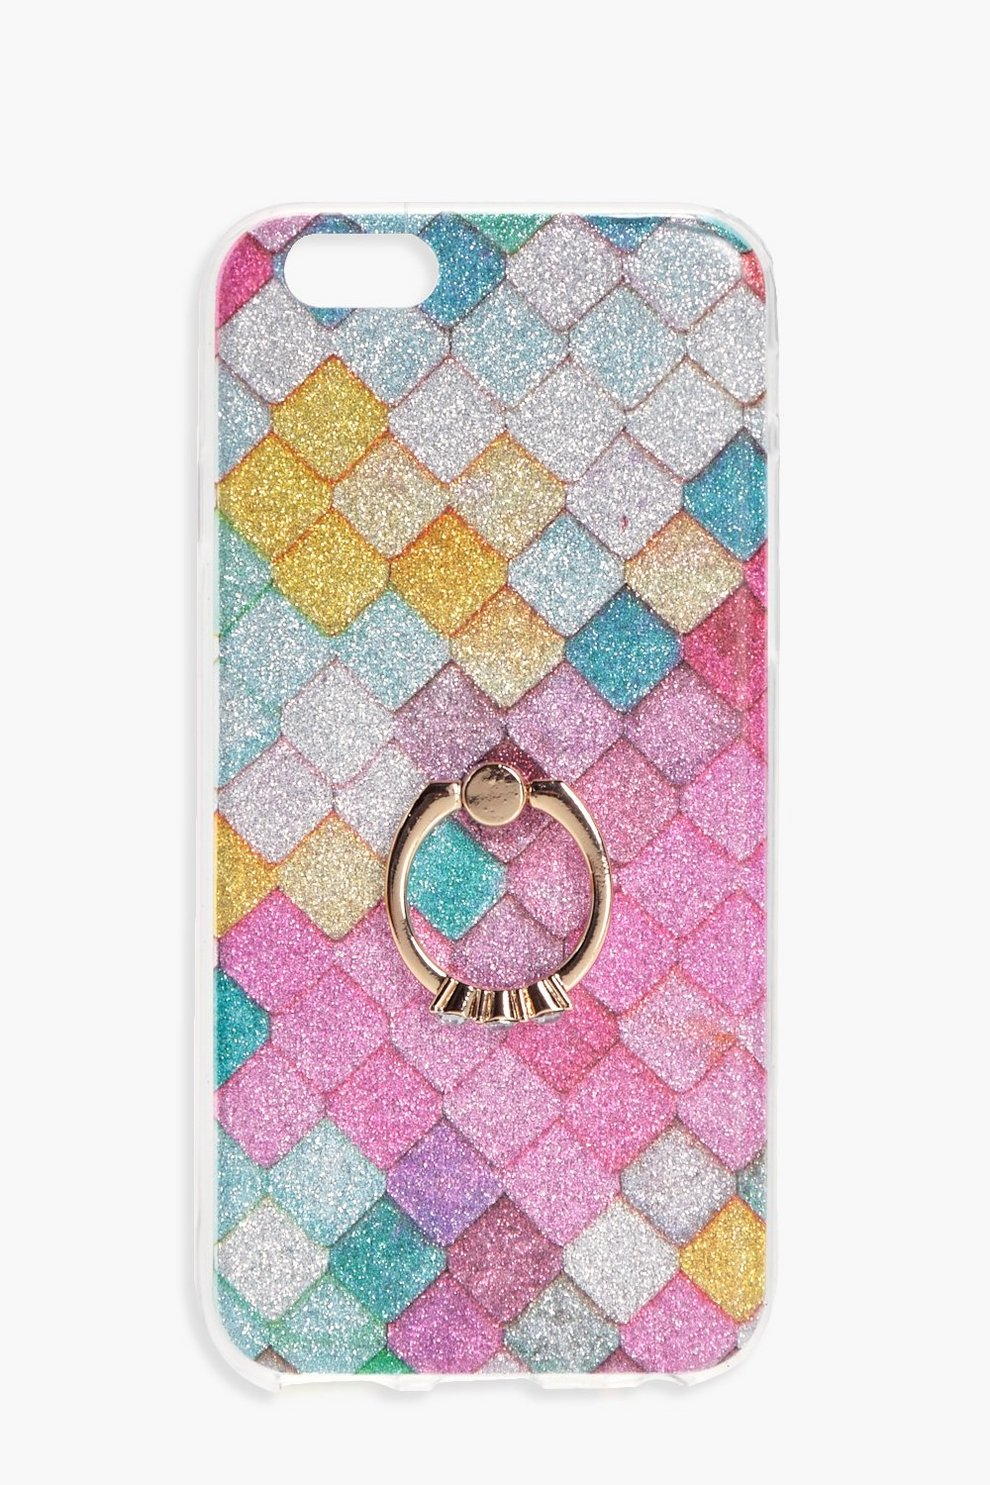 iphone 6 case 99p